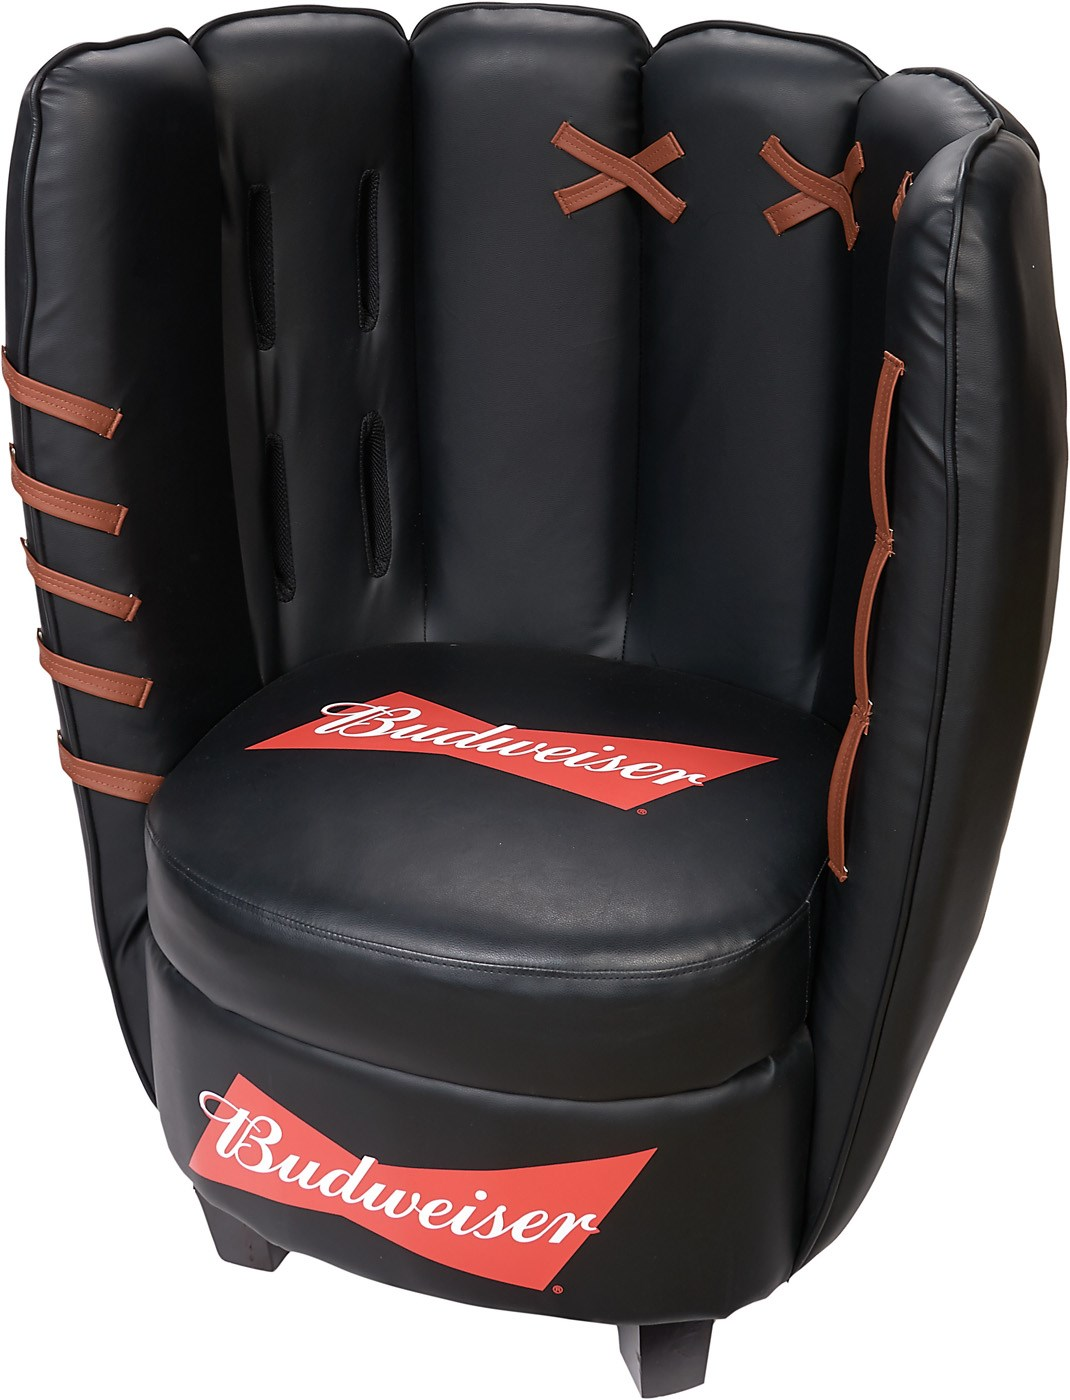 Budweiser Beer Giant Leather Baseball Glove Chair